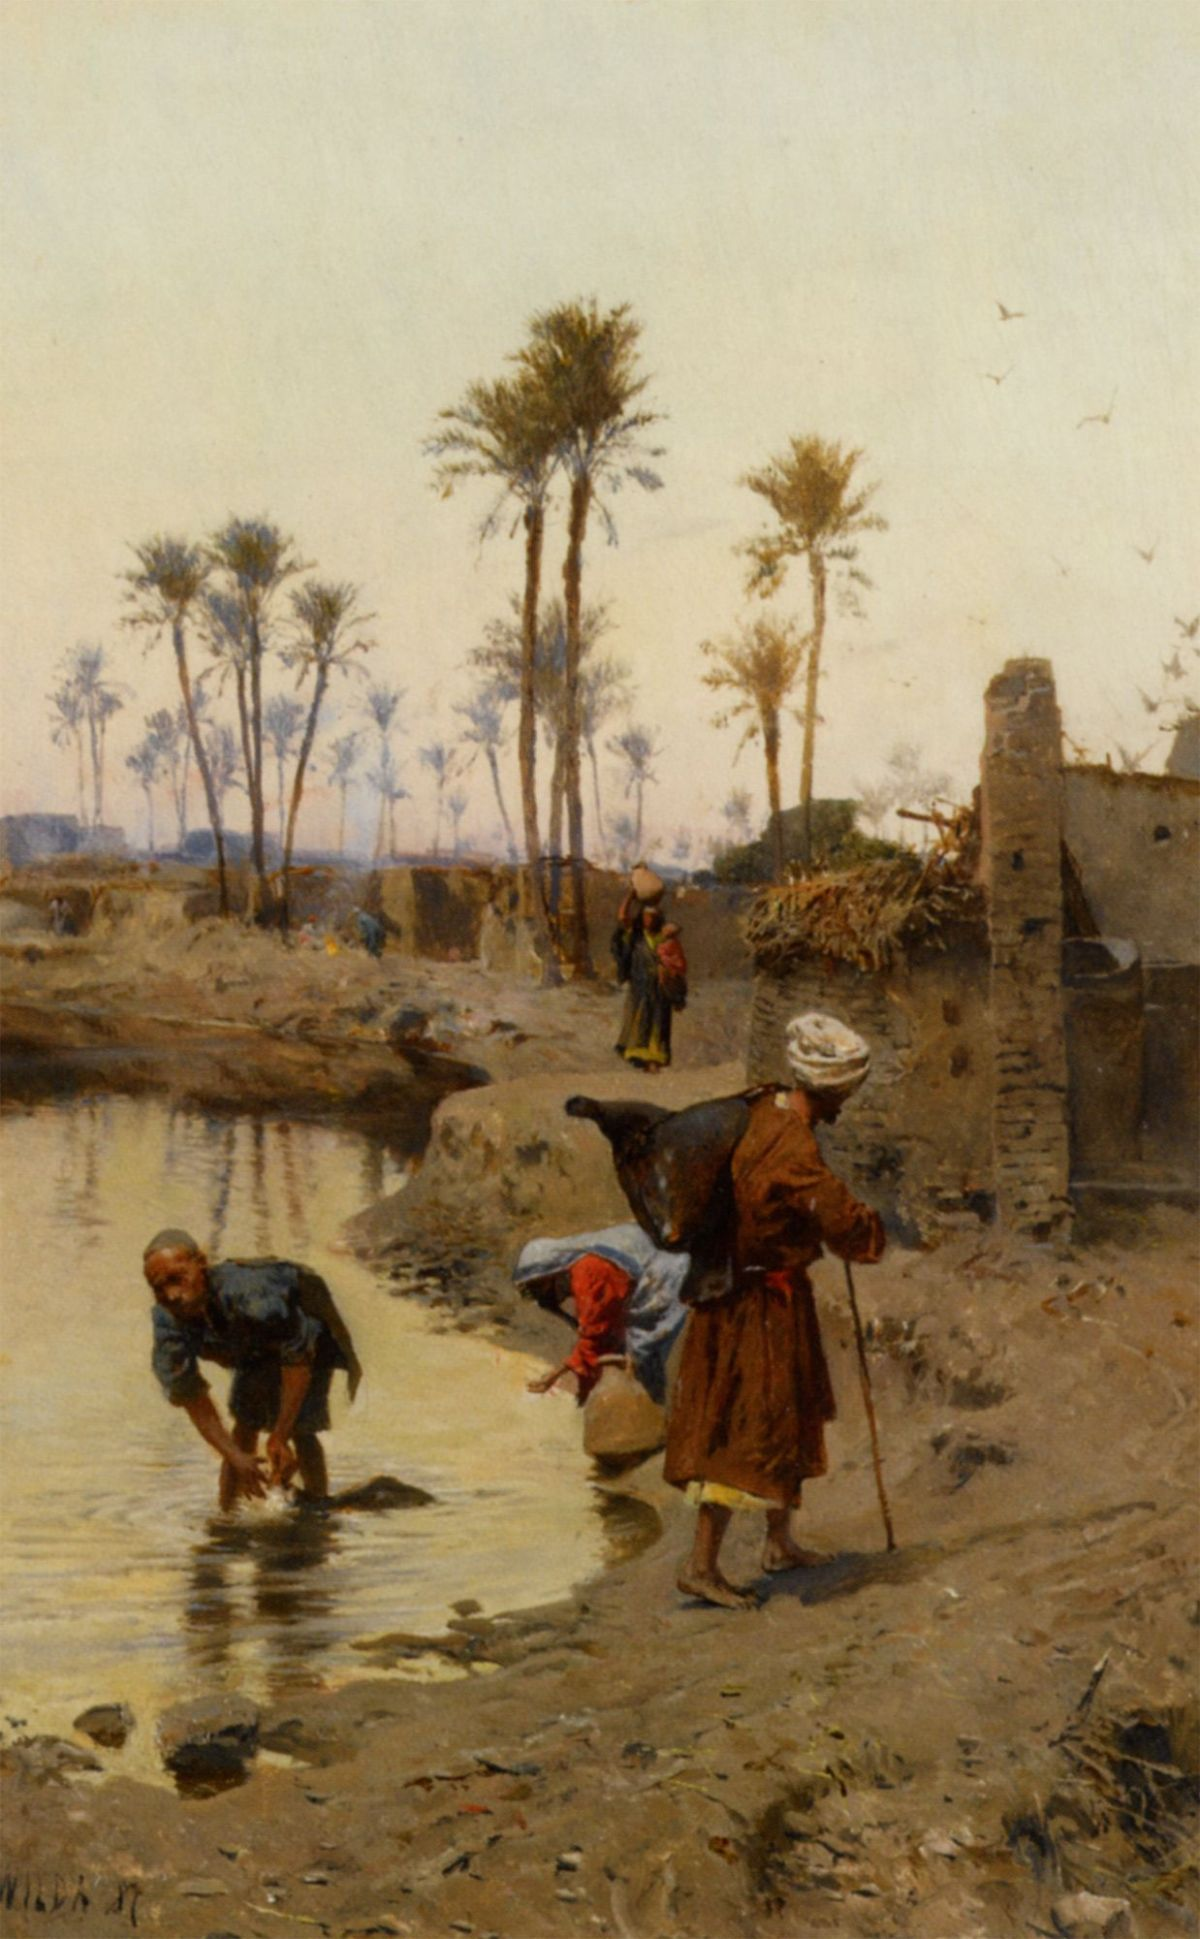 The Watercarriers by Charles Wilda